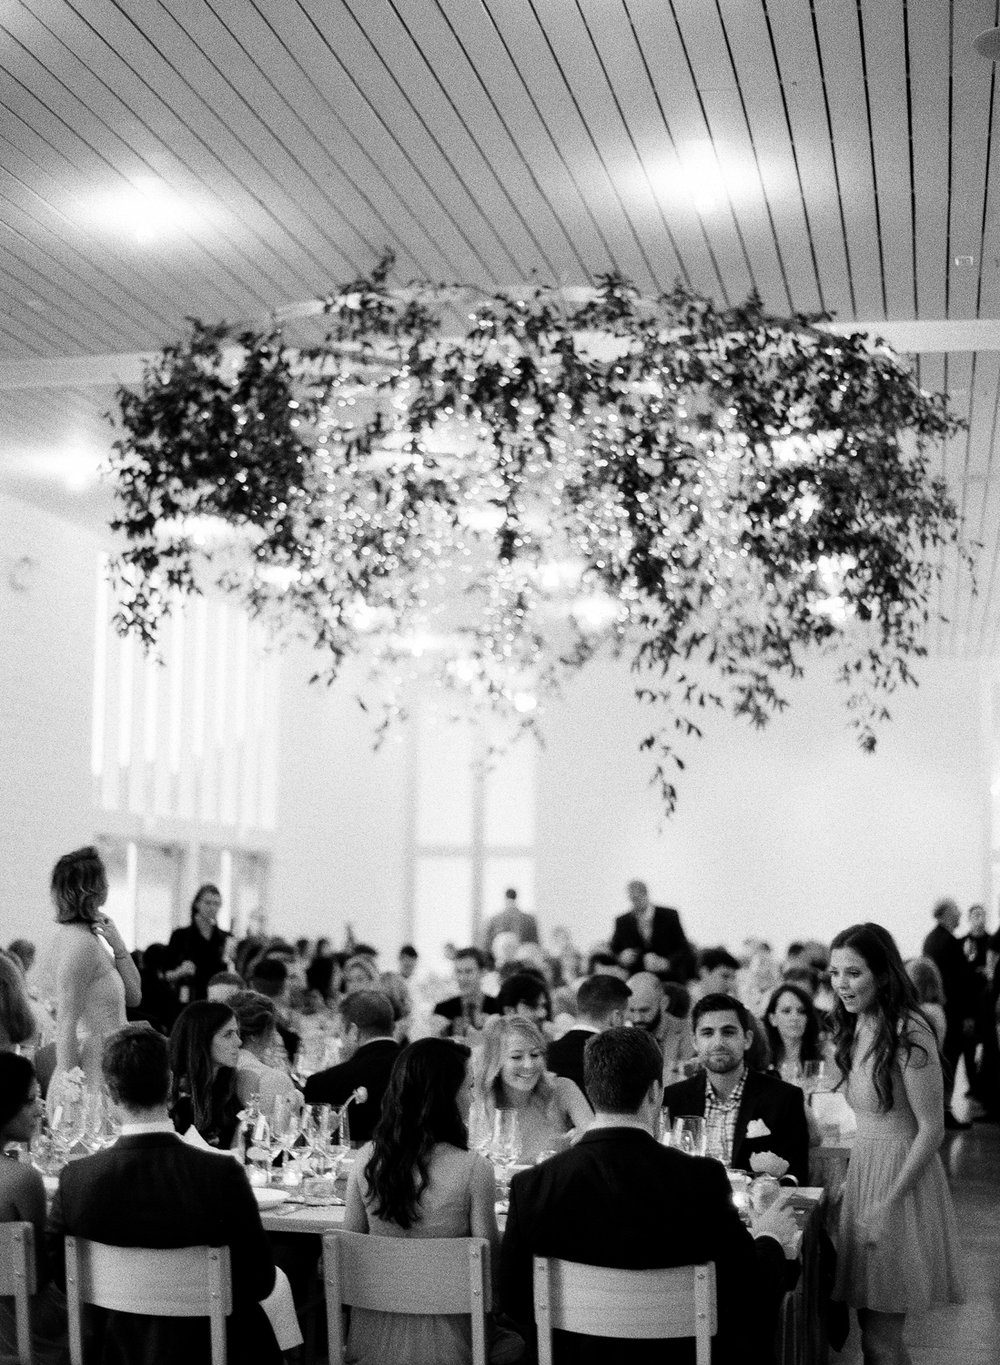 PROSPECT_HOUSE_WEDDING_AUSTIN_TX_BY_MATTHEW_MOORE_PHOTOGRAPHY_00623.jpg